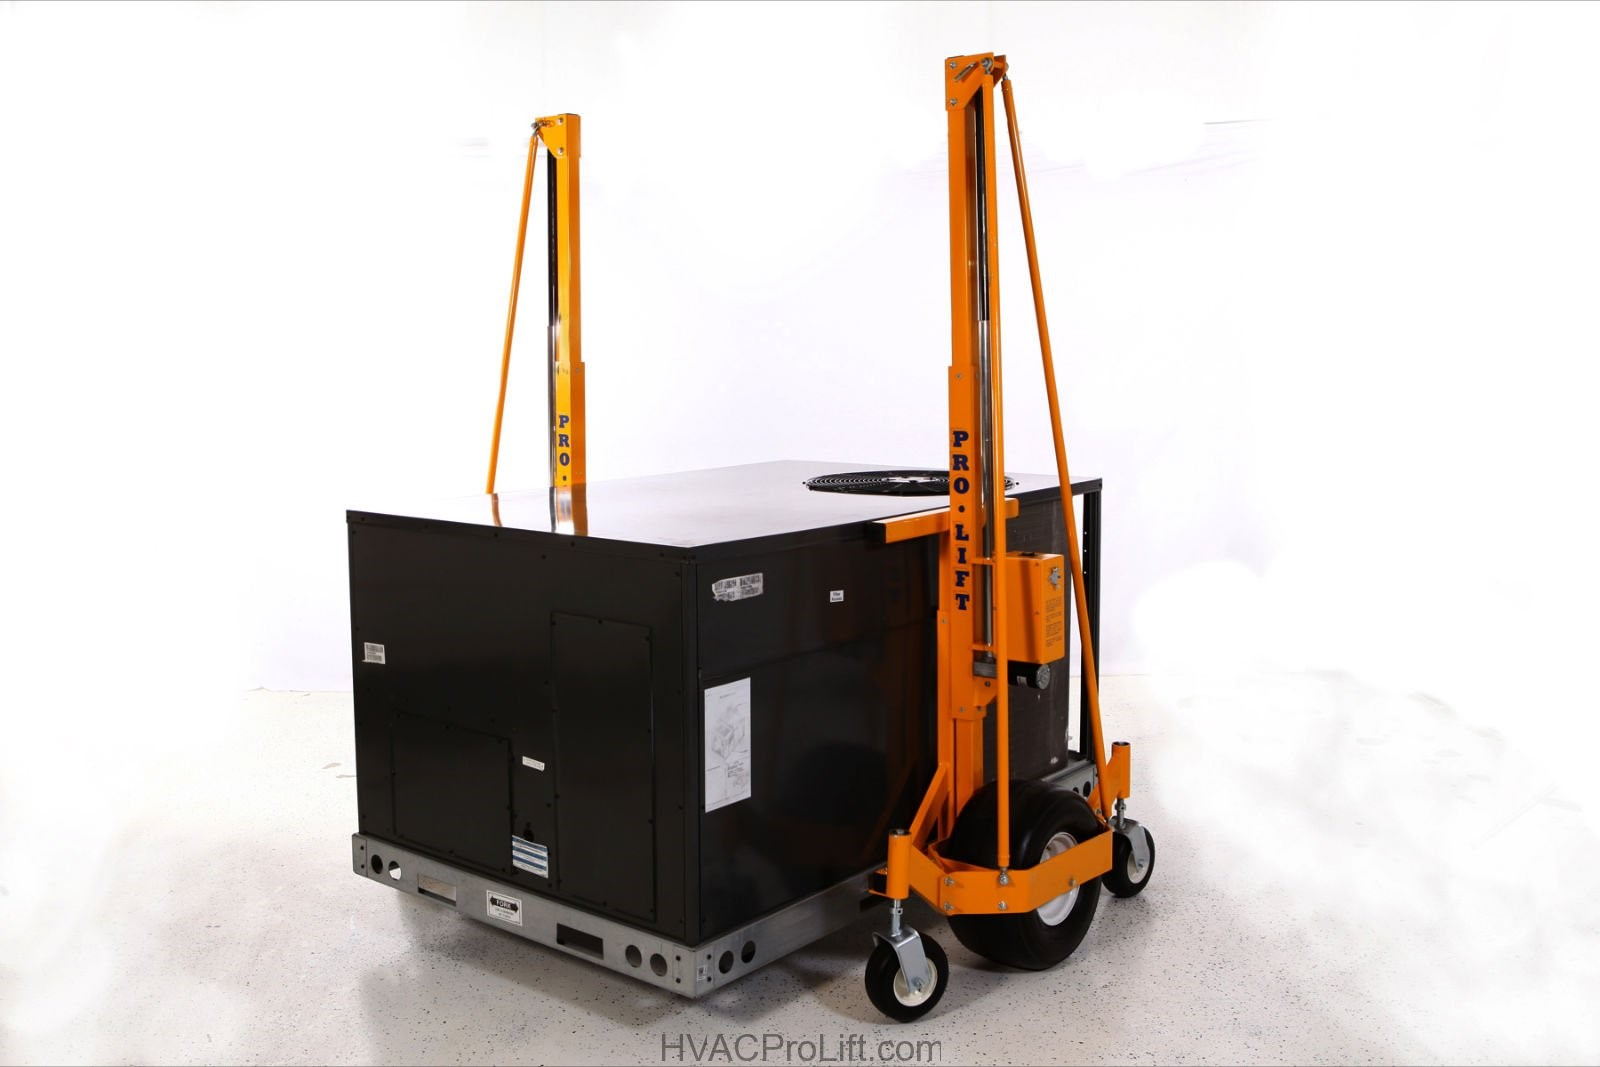 Pro Lift Air Conditioner Lifting and Transport System